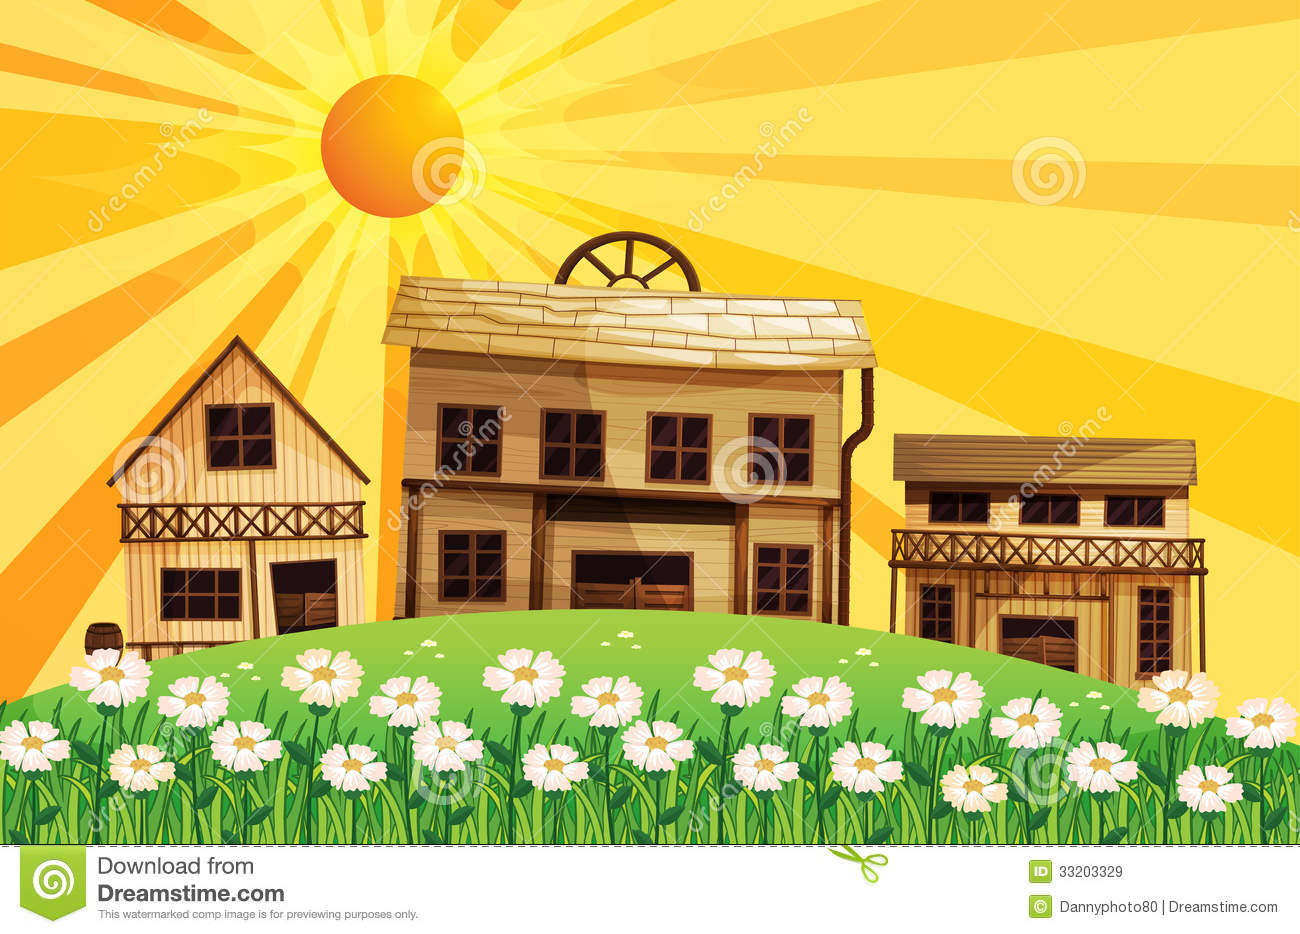 Different Designs Of Houses Royalty Free Stock Images